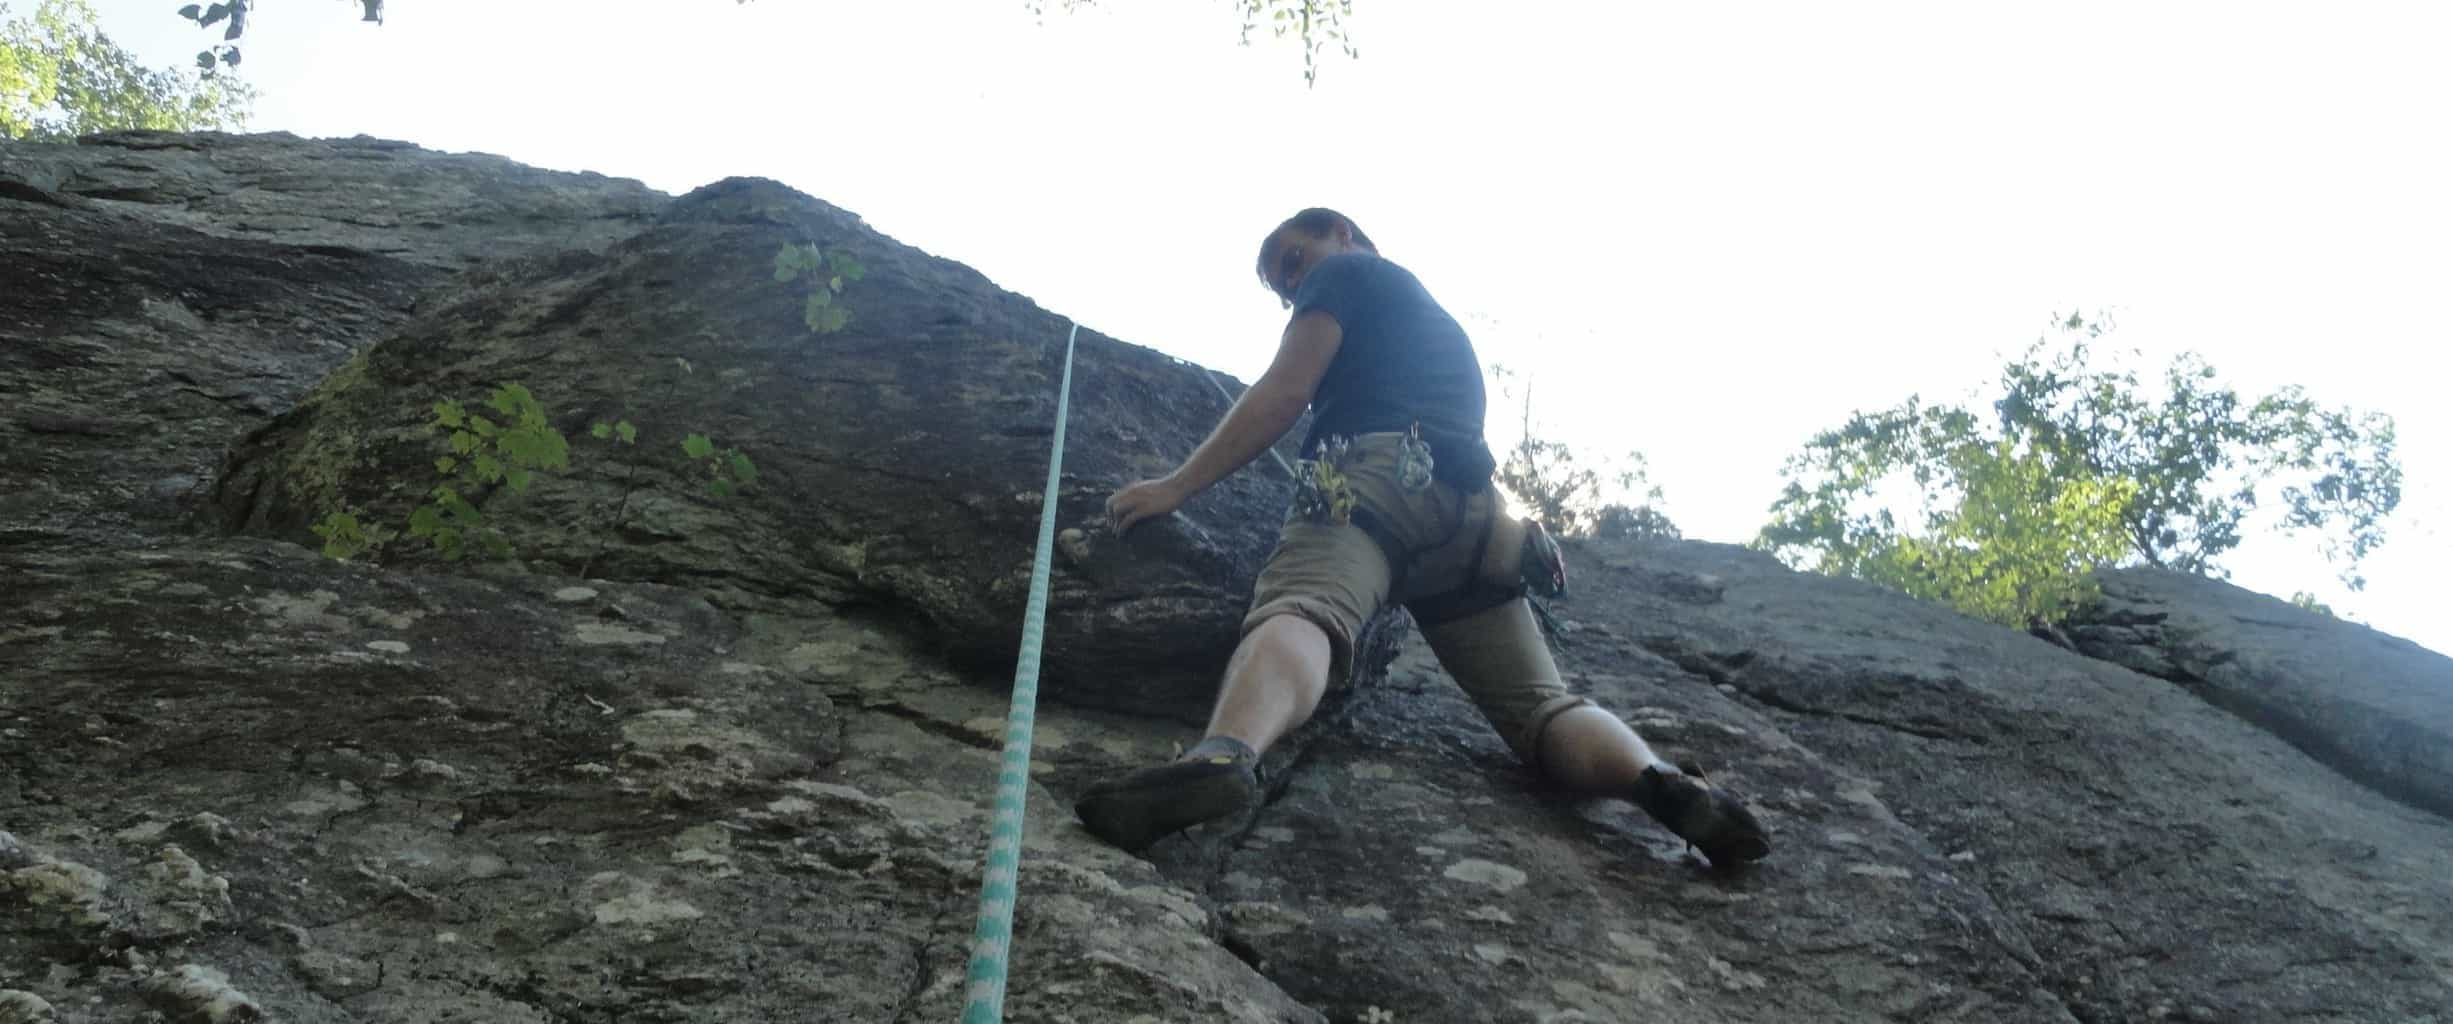 Rock Climbing at Carderock, Maryland - DC's Closest Crag